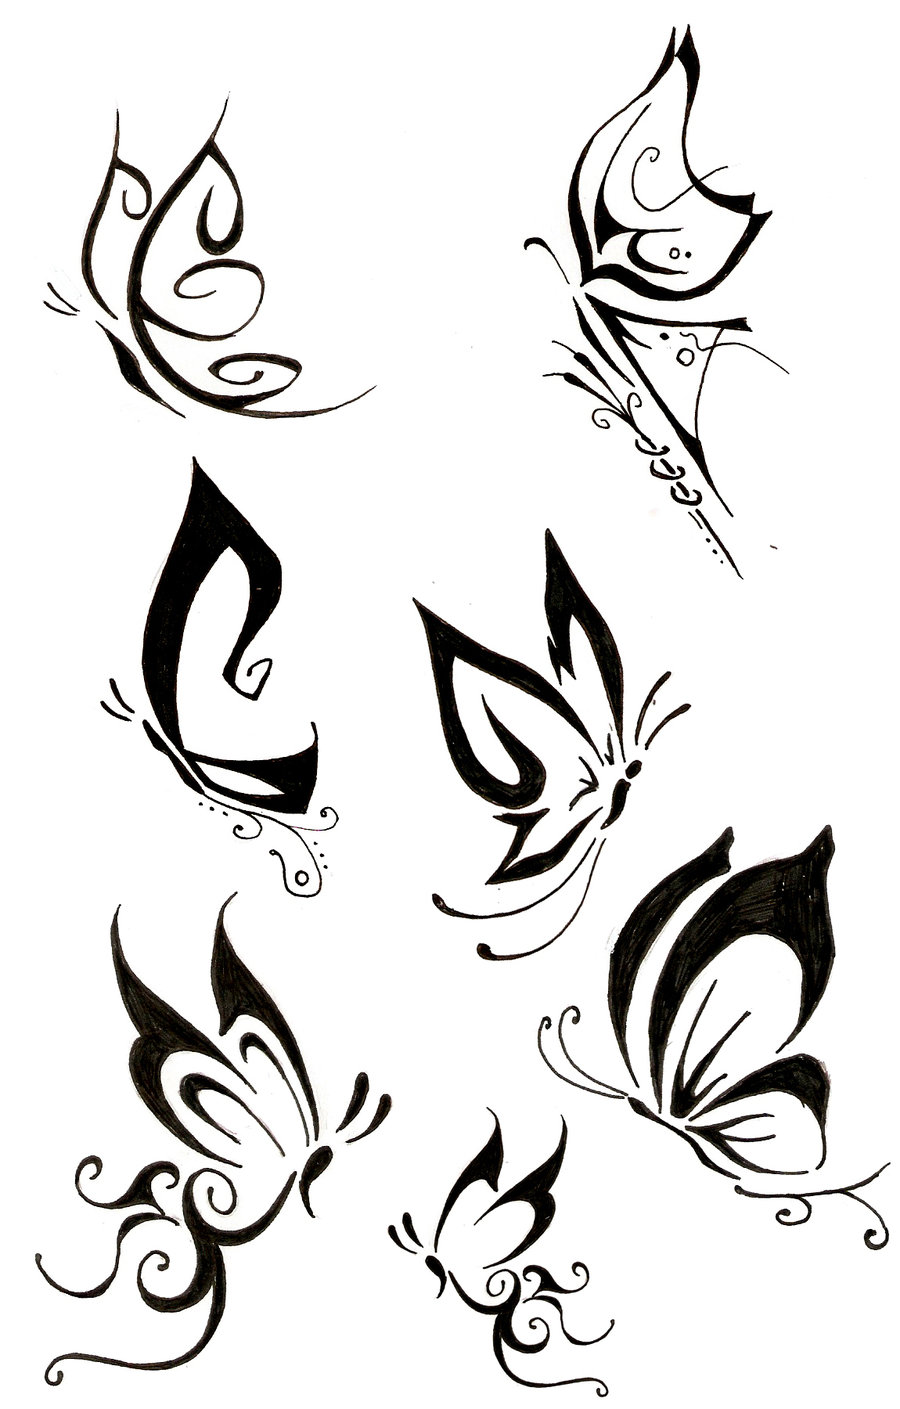 tattoo designs tribal Designs Tattoo Tattoobite.com Butterfly Tribal More